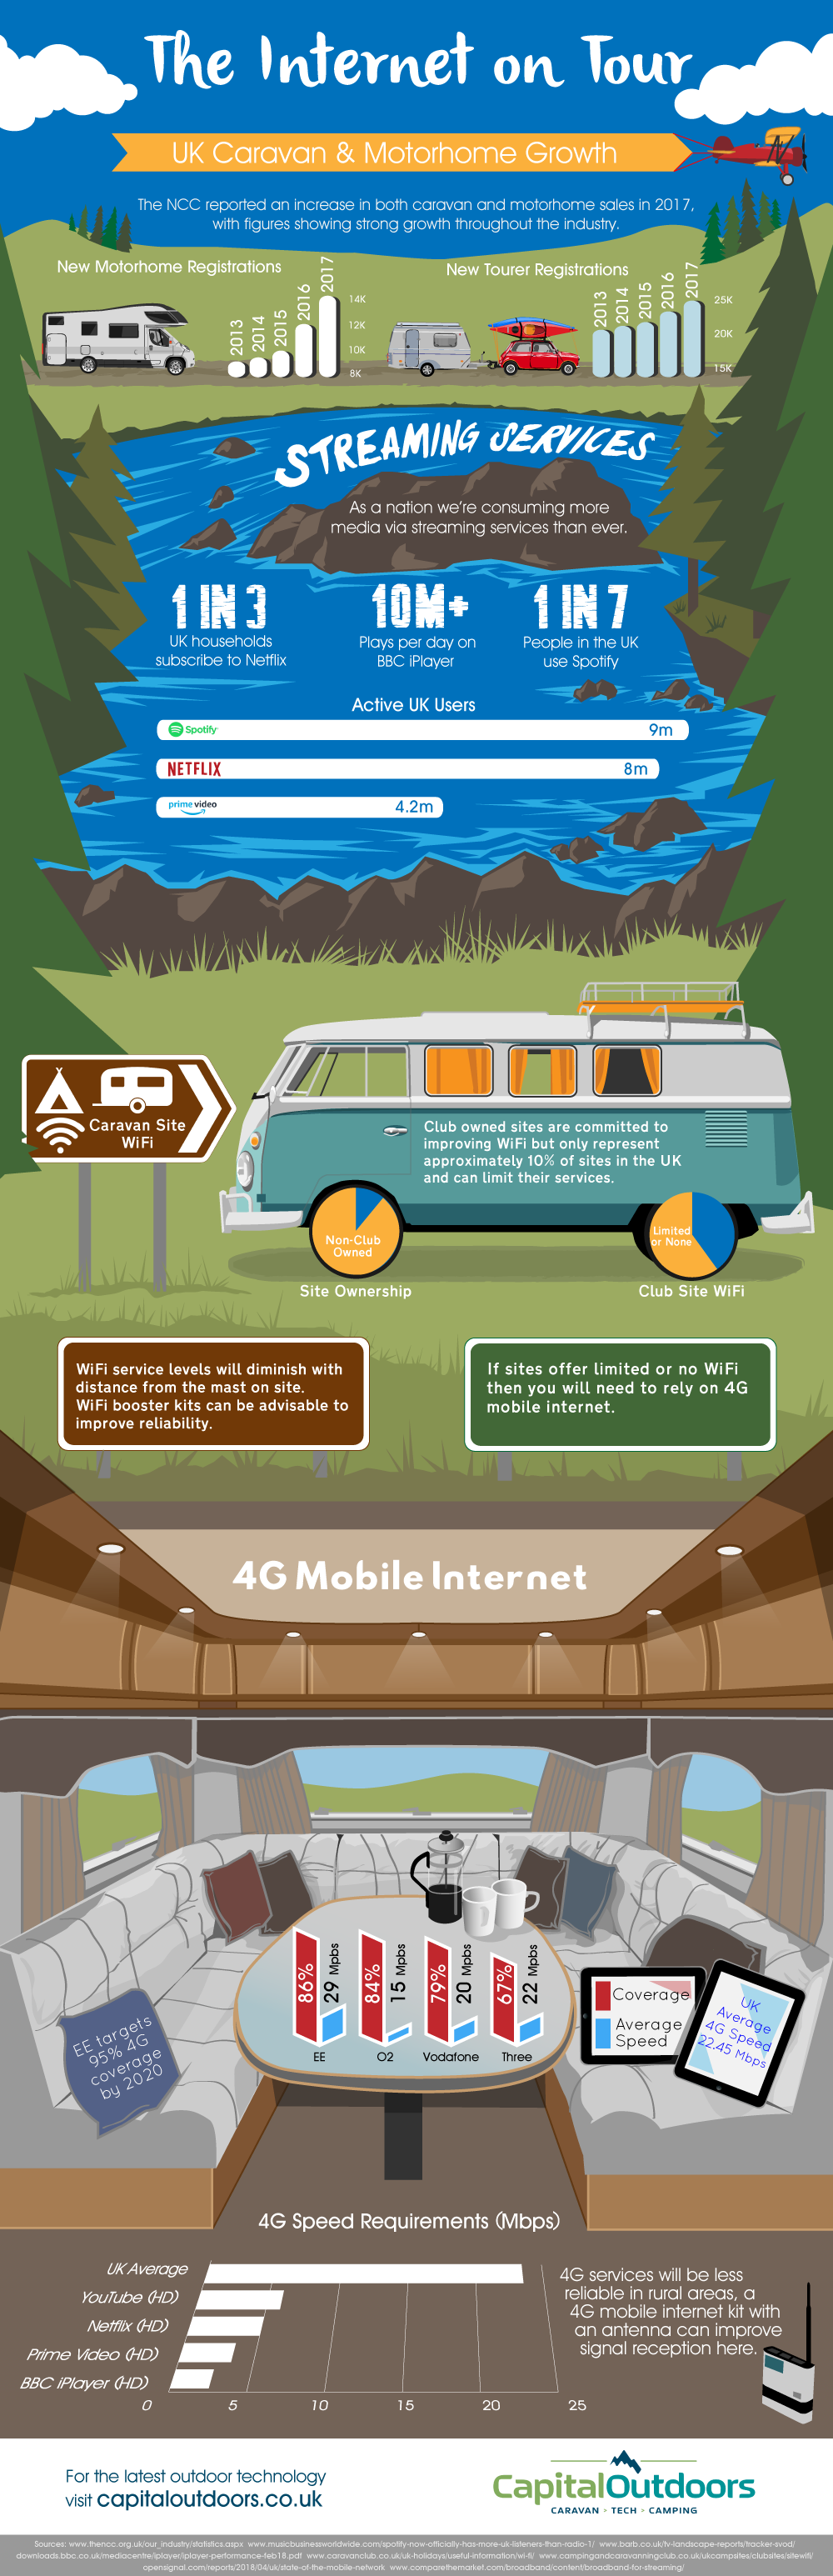 WiFi On Tour Infographic